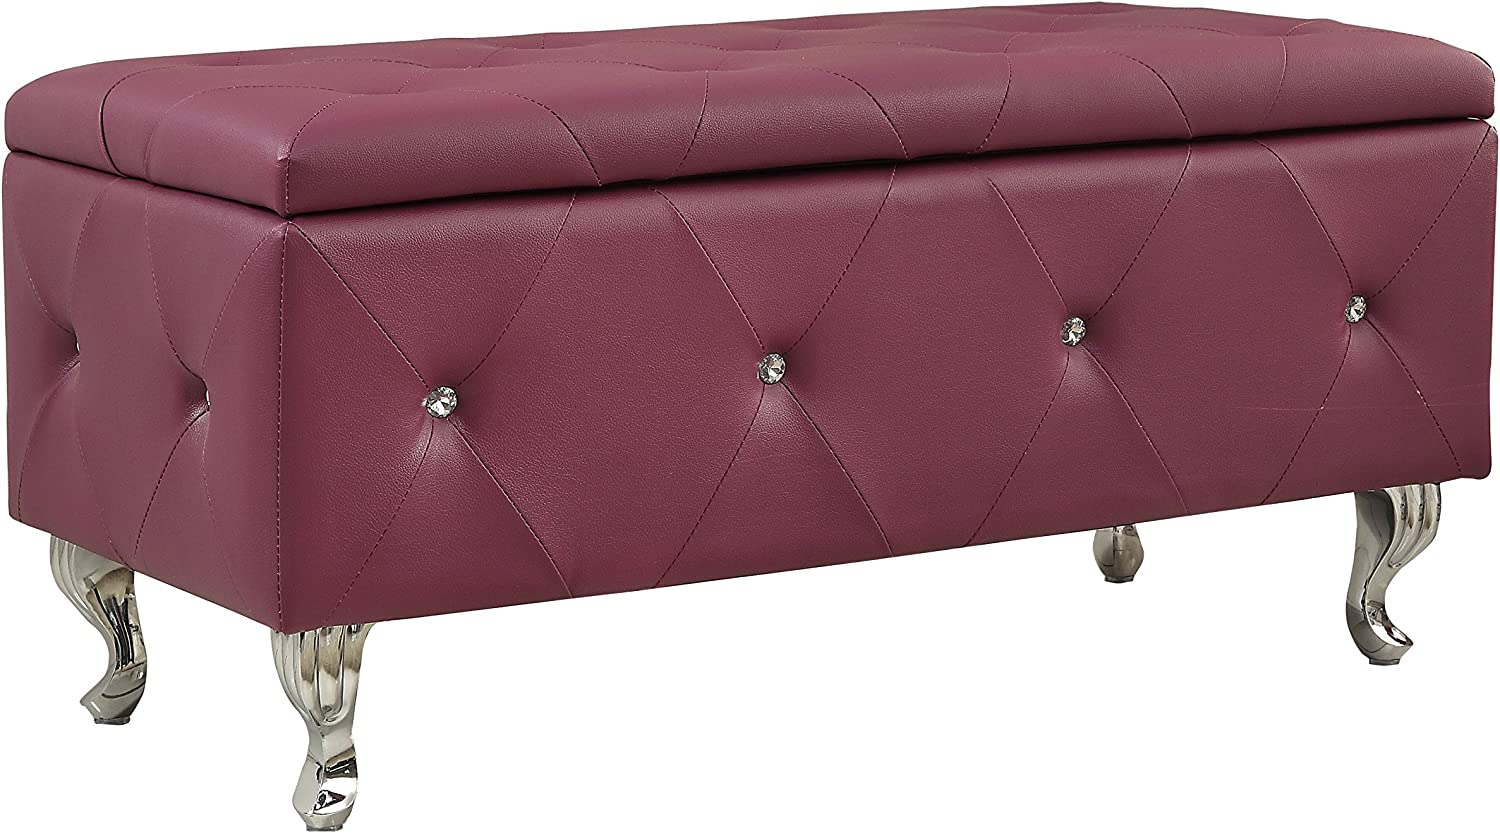 AC Pacific Ultra Modern Leather Bonded Upholstered Storage Bench With Tufting and Crystal Leg Finish, Purple